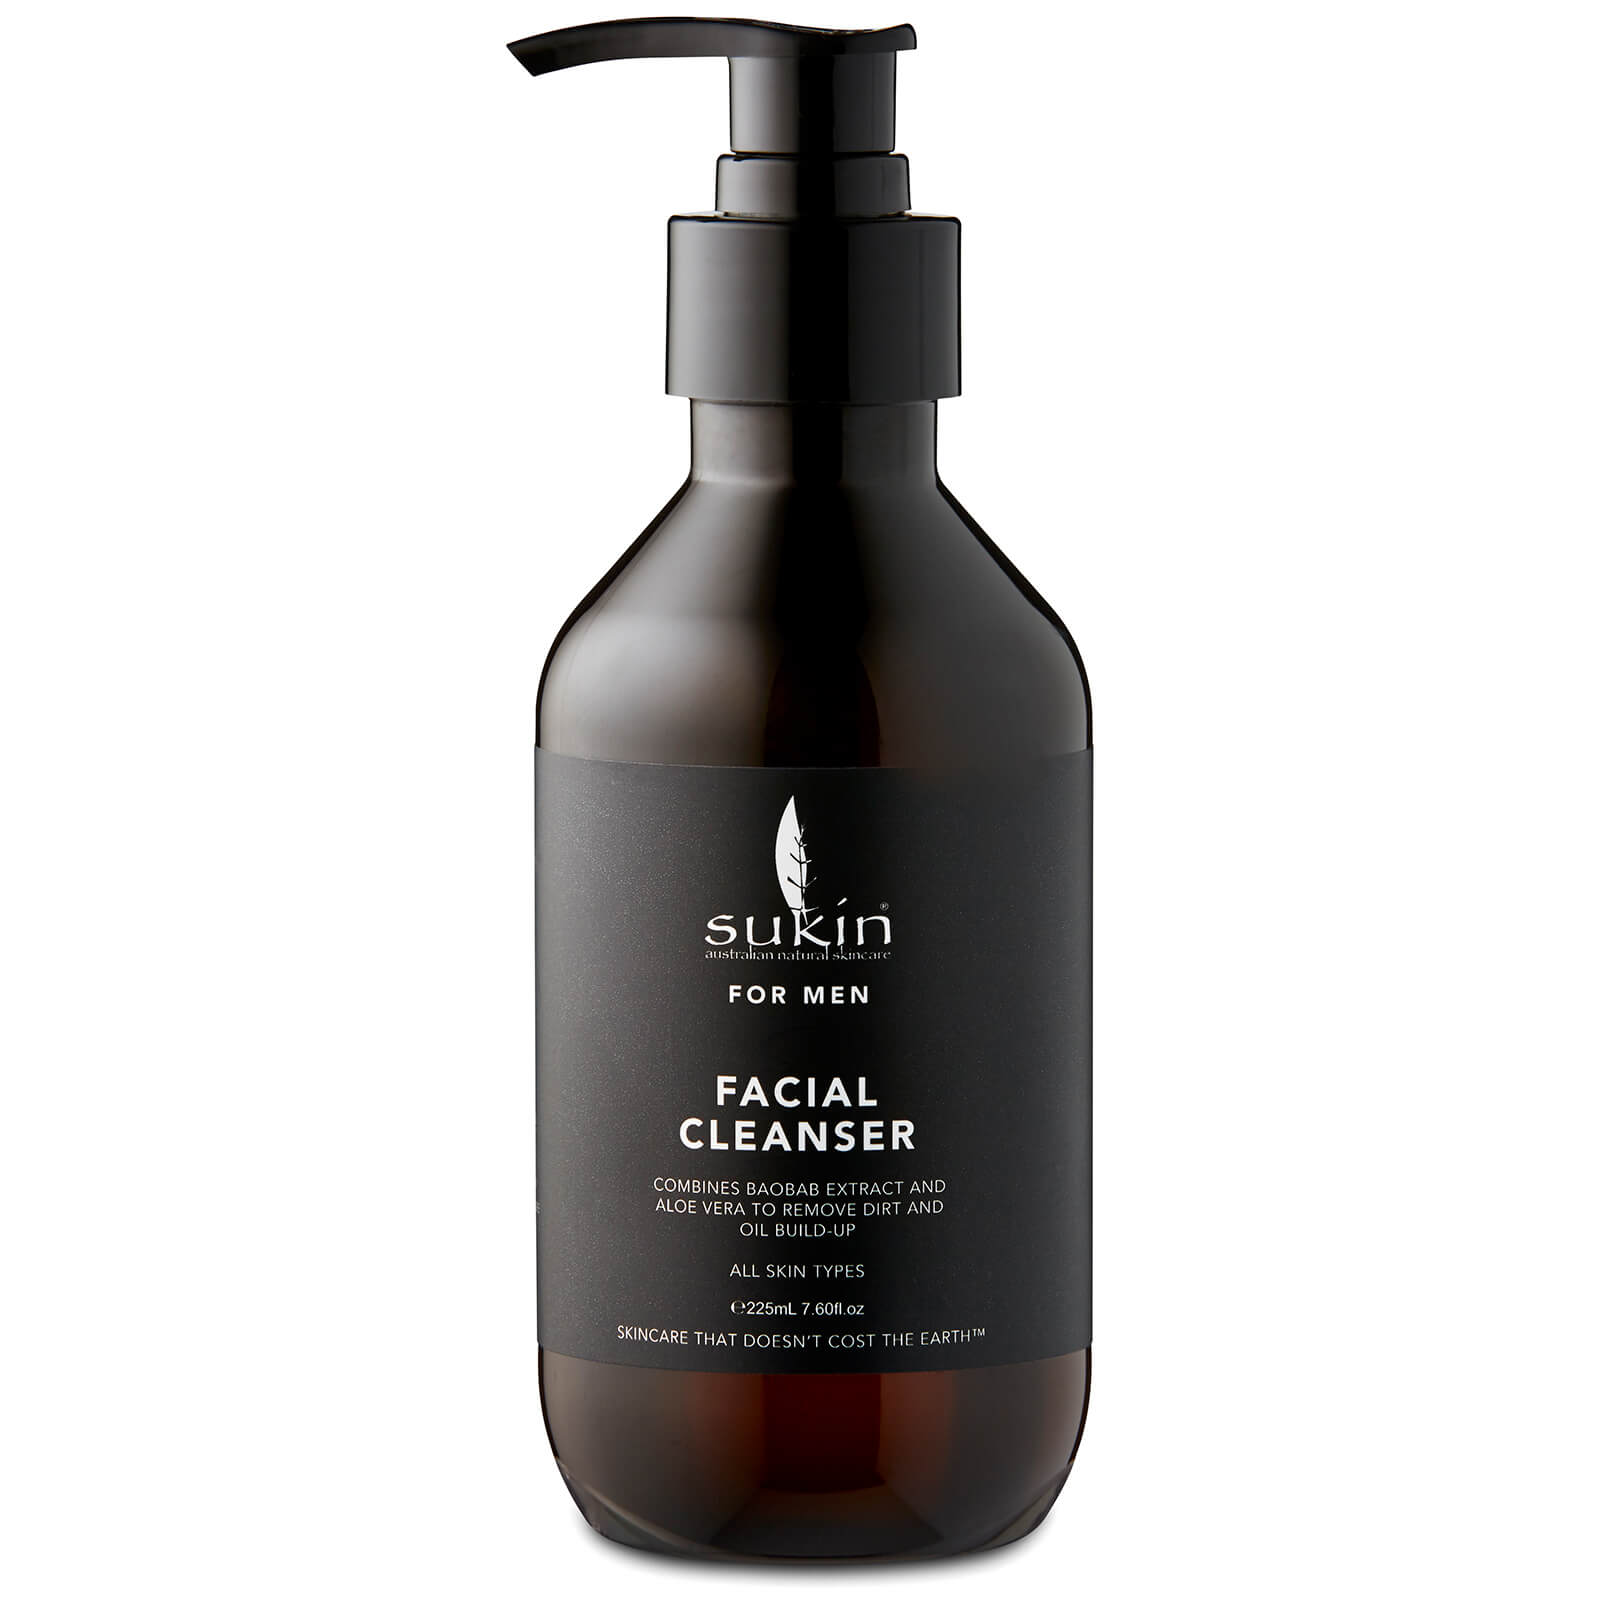 Sukin For Men Facial Cleanser 225ml Free Shipping Lookfantastic